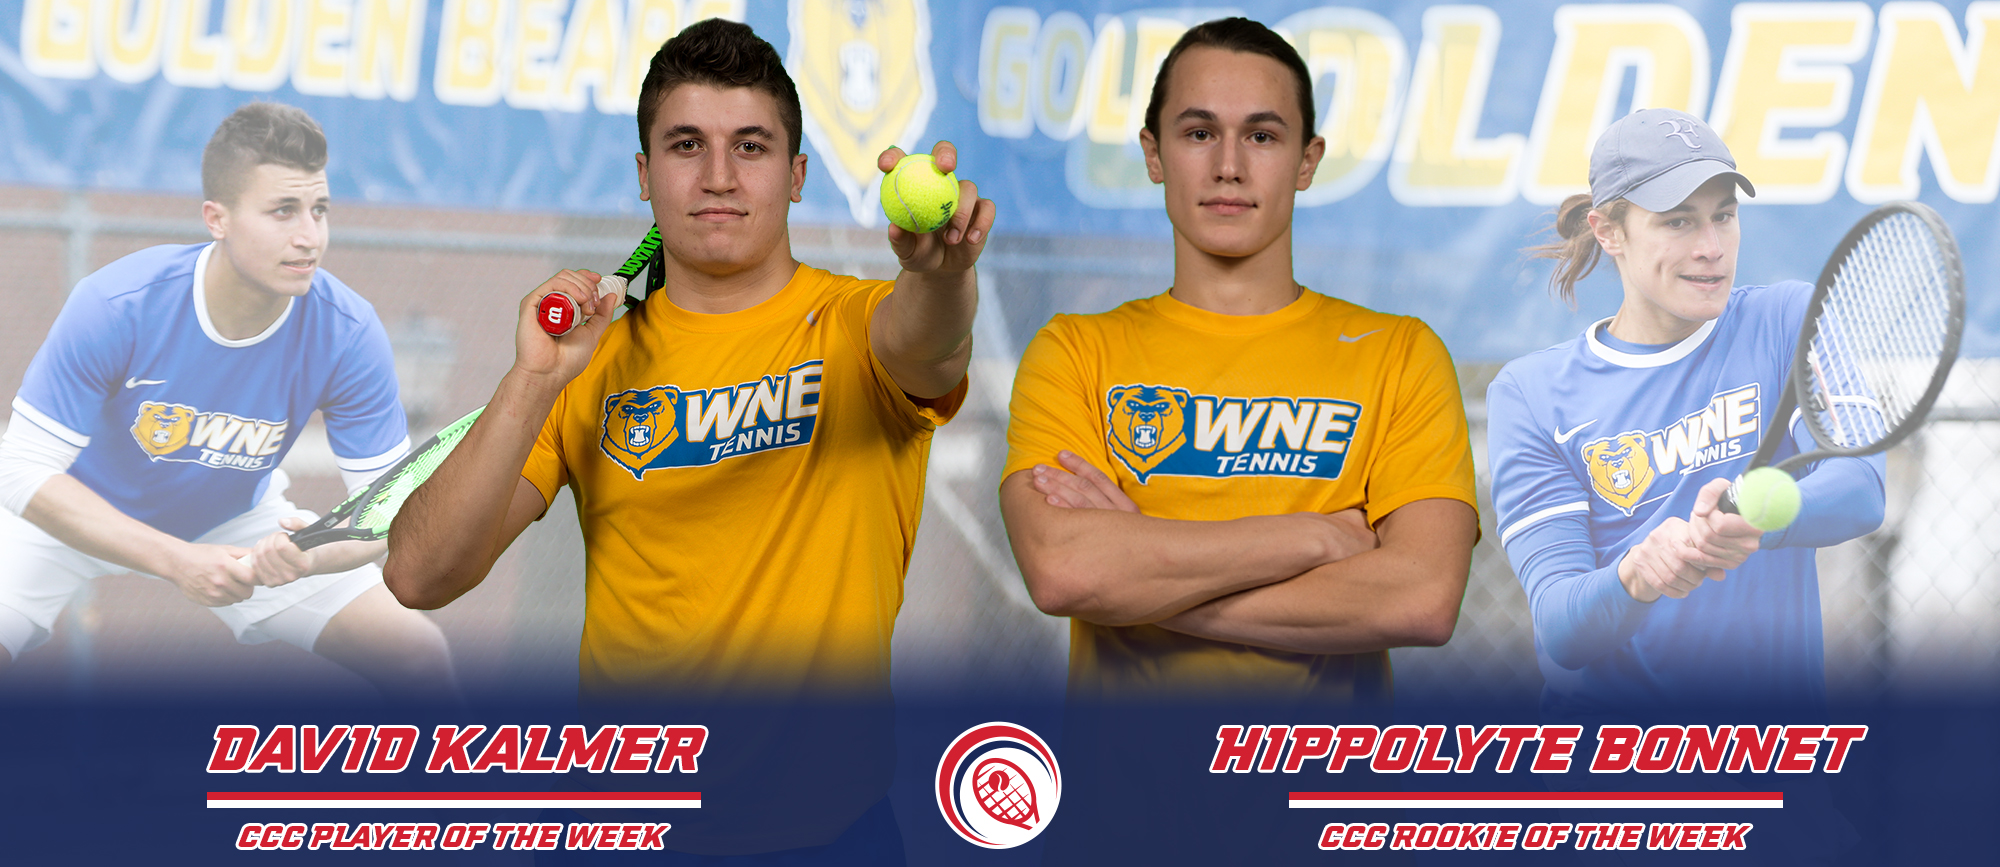 Western New England Sweeps CCC Weekly Tennis Awards